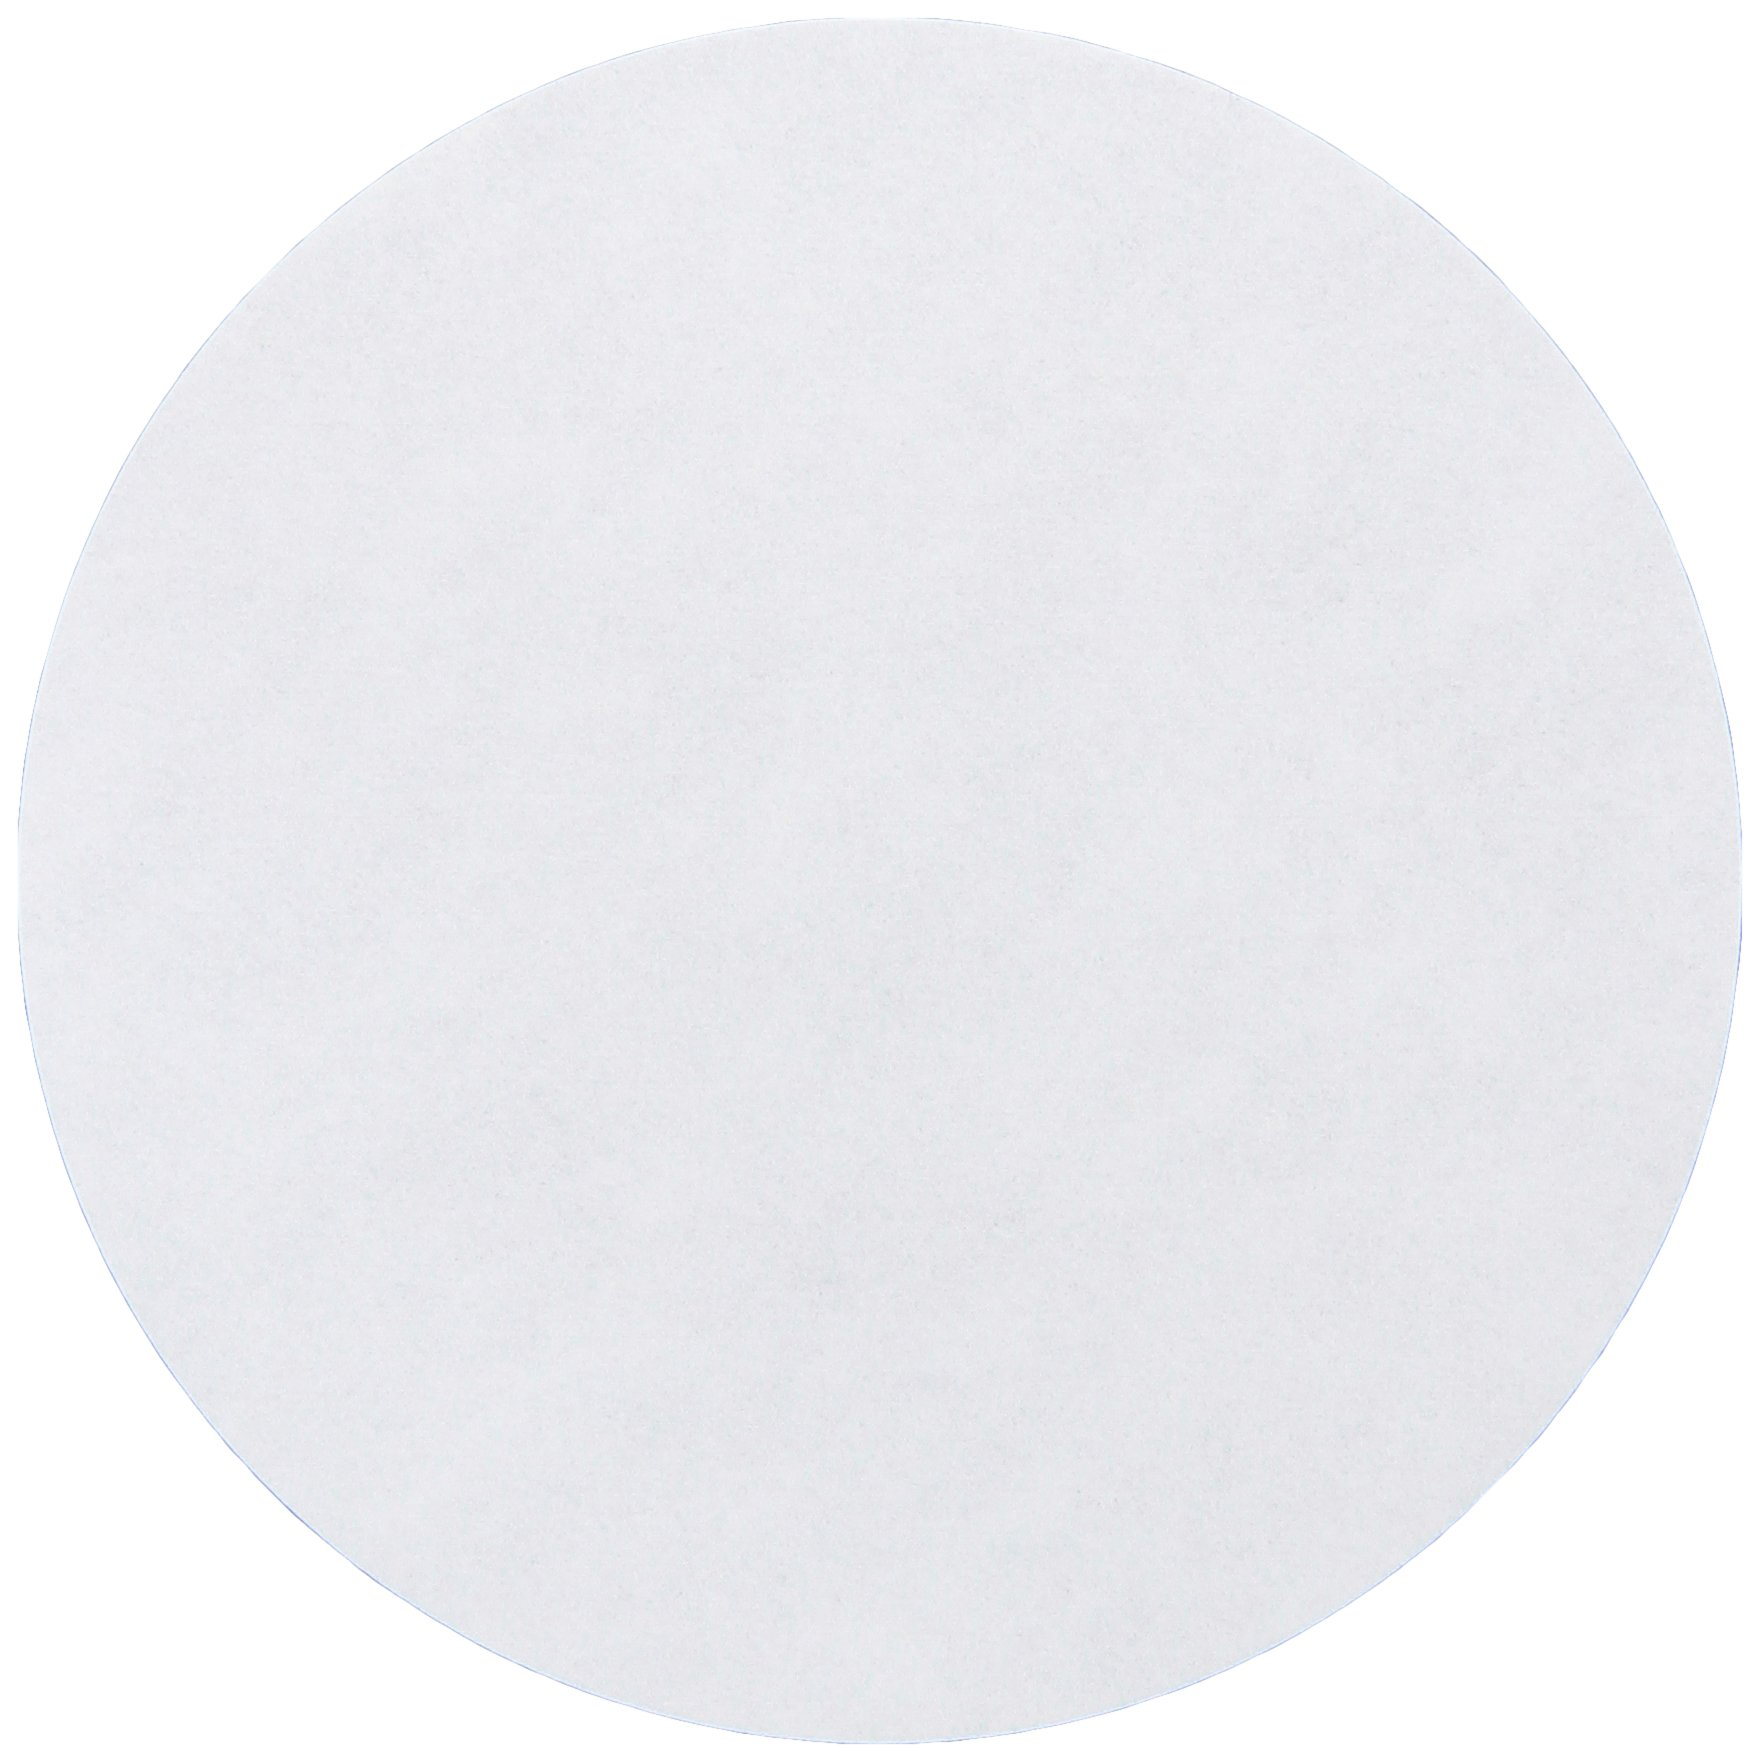 Whatman 4712B30PK 1001110 Grade 1 Qualitative Filter Paper, 110 mm Thick and Max Volume 571 ml/m (Pack of 100)